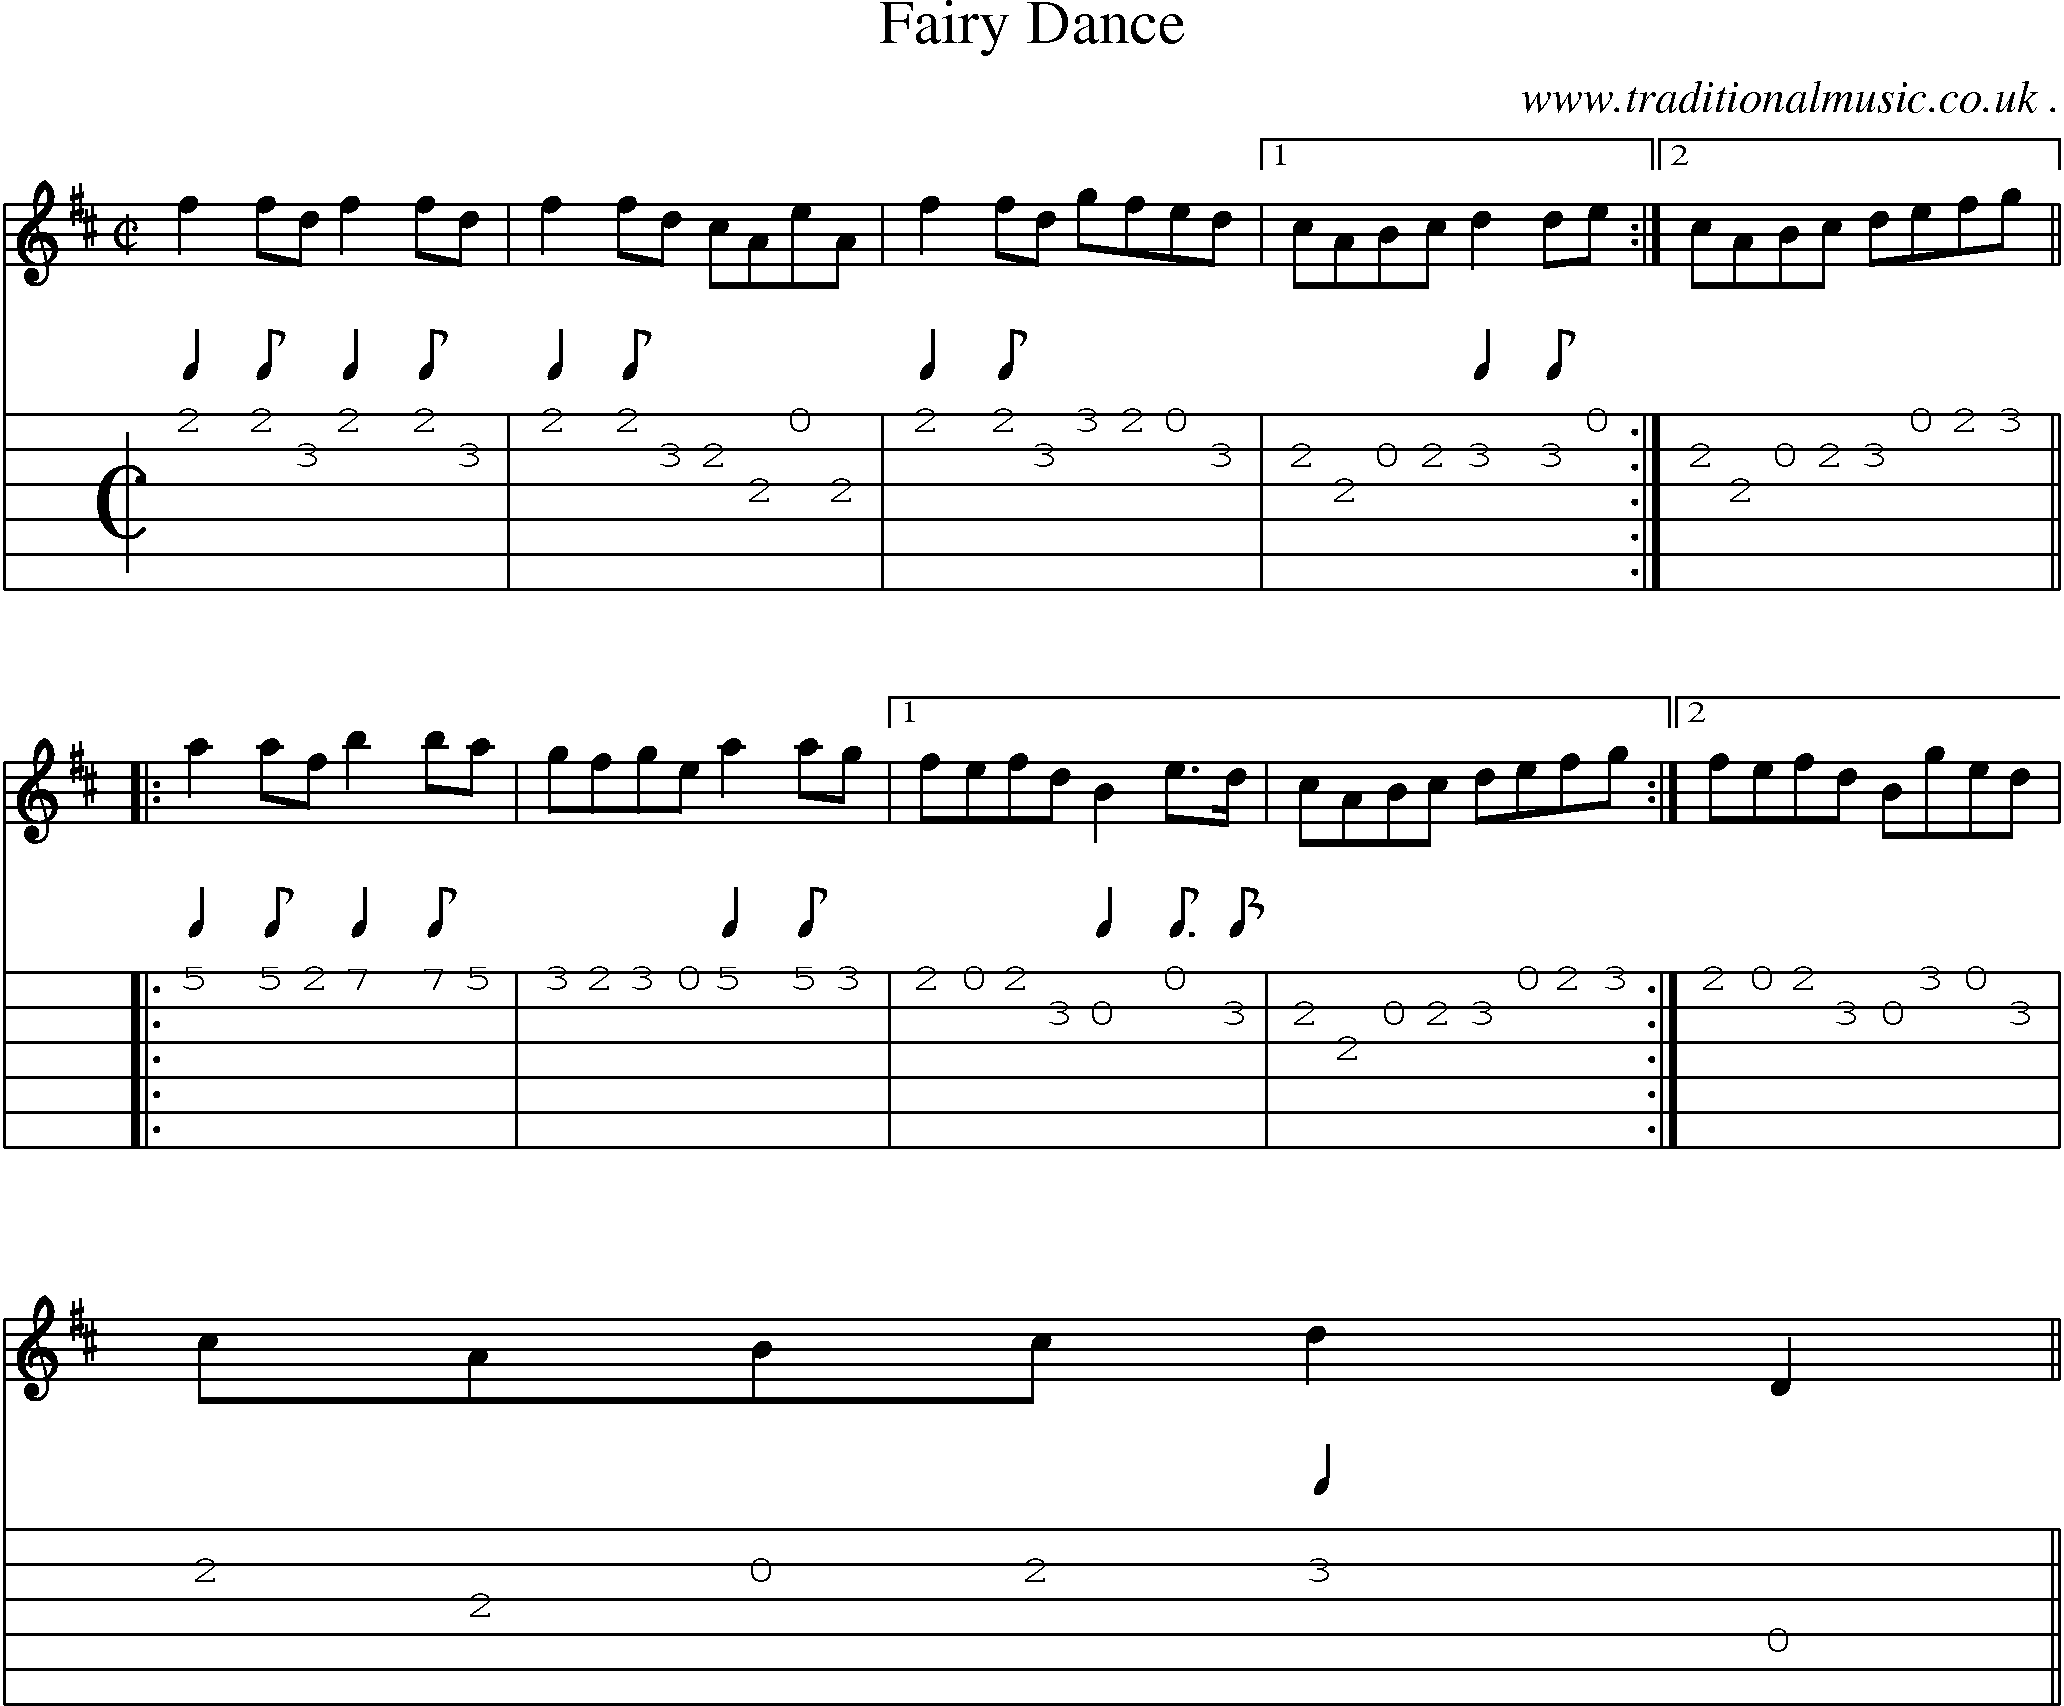 Scottish tune sheetmusic midi mp3 guitar chords tabs fairy sheet music score chords and guitar tabs for fairy dance hexwebz Images